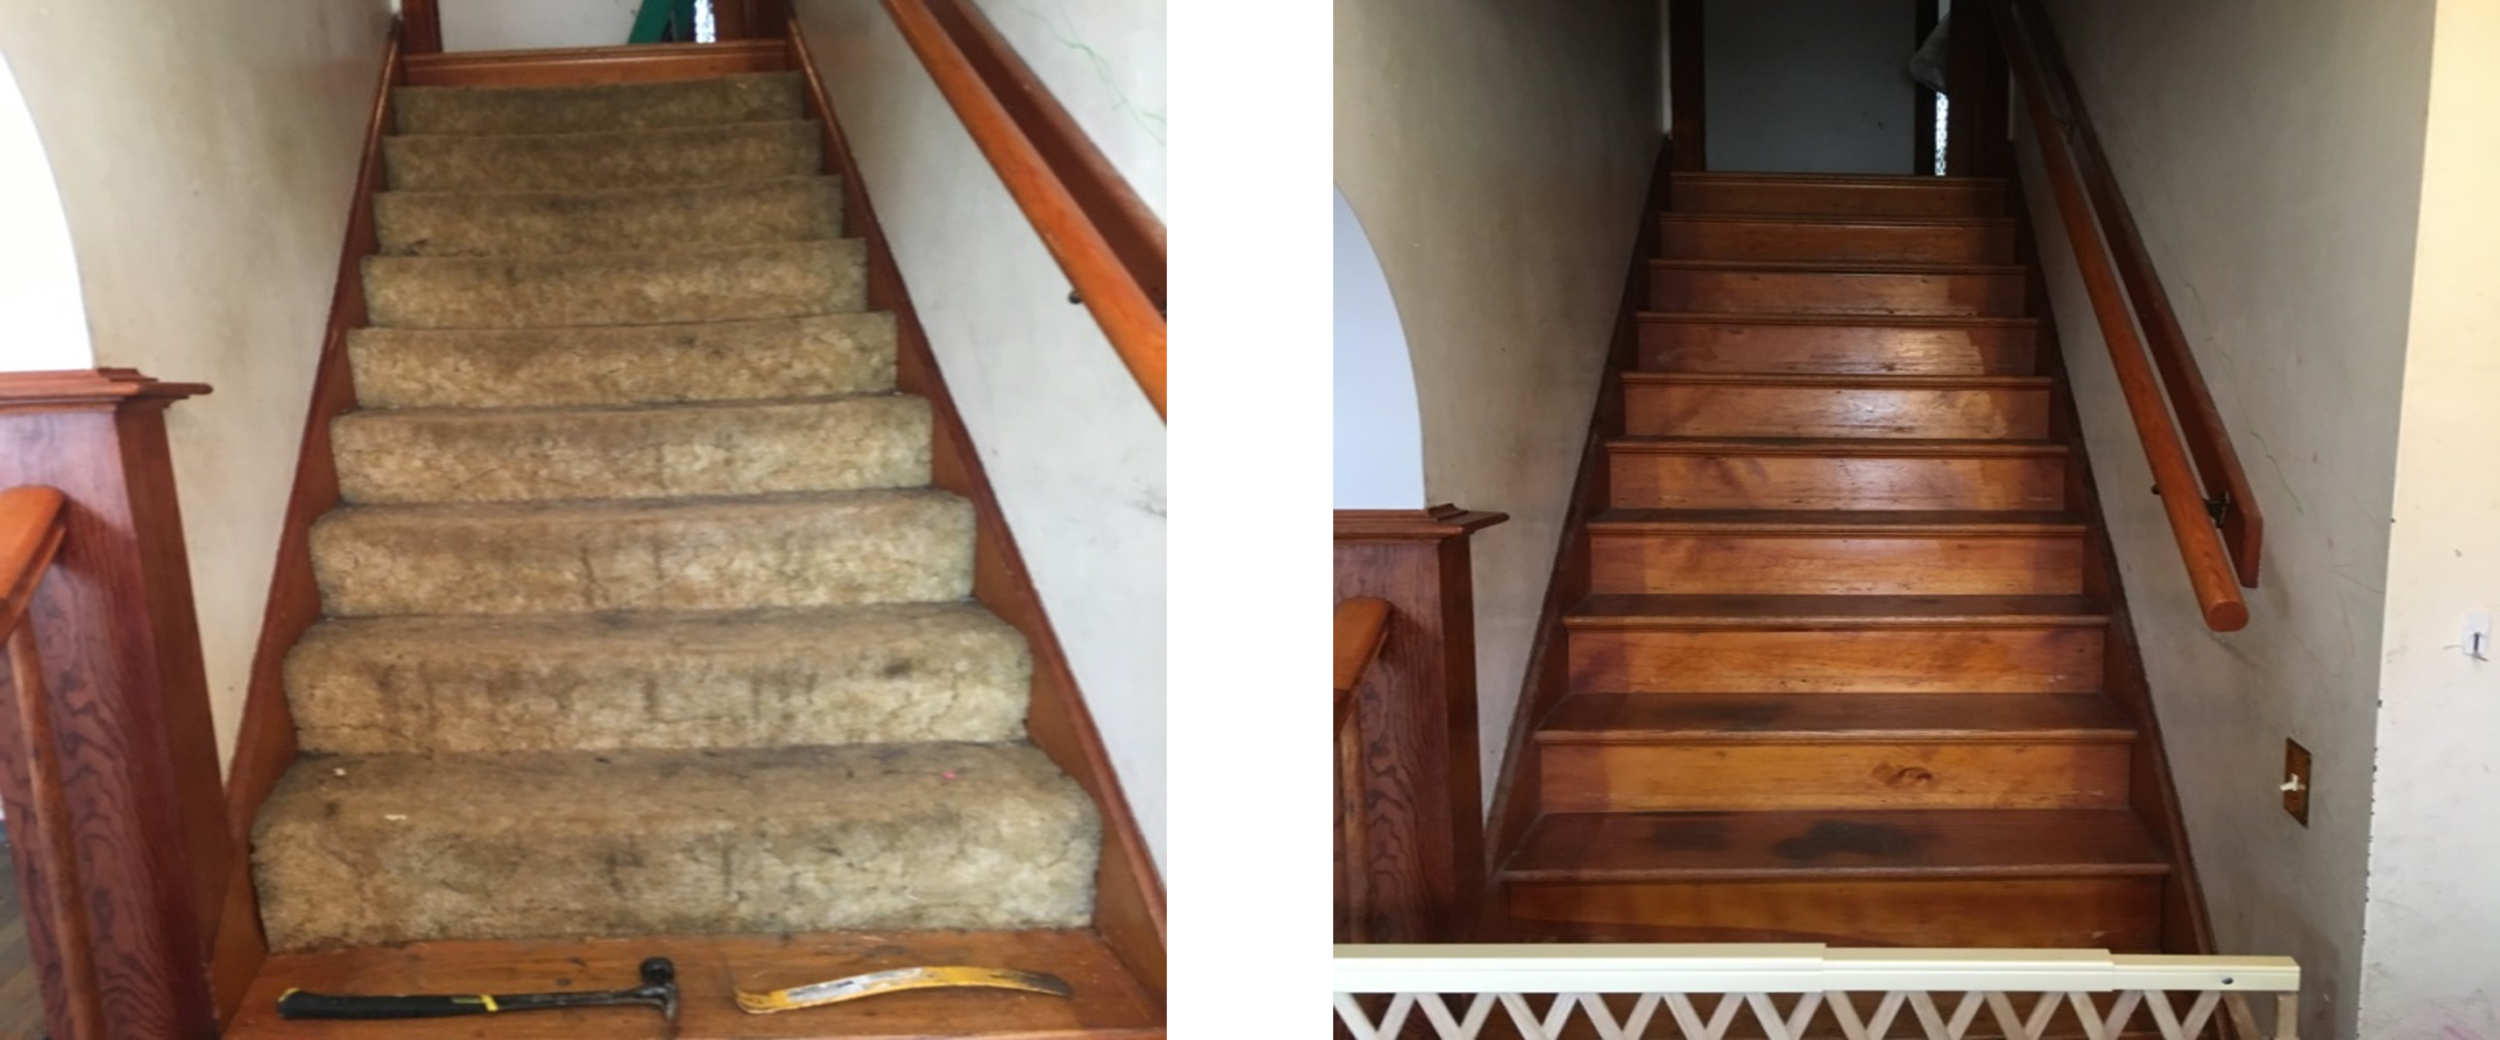 Carpeted staircase removed as an asthma trigger